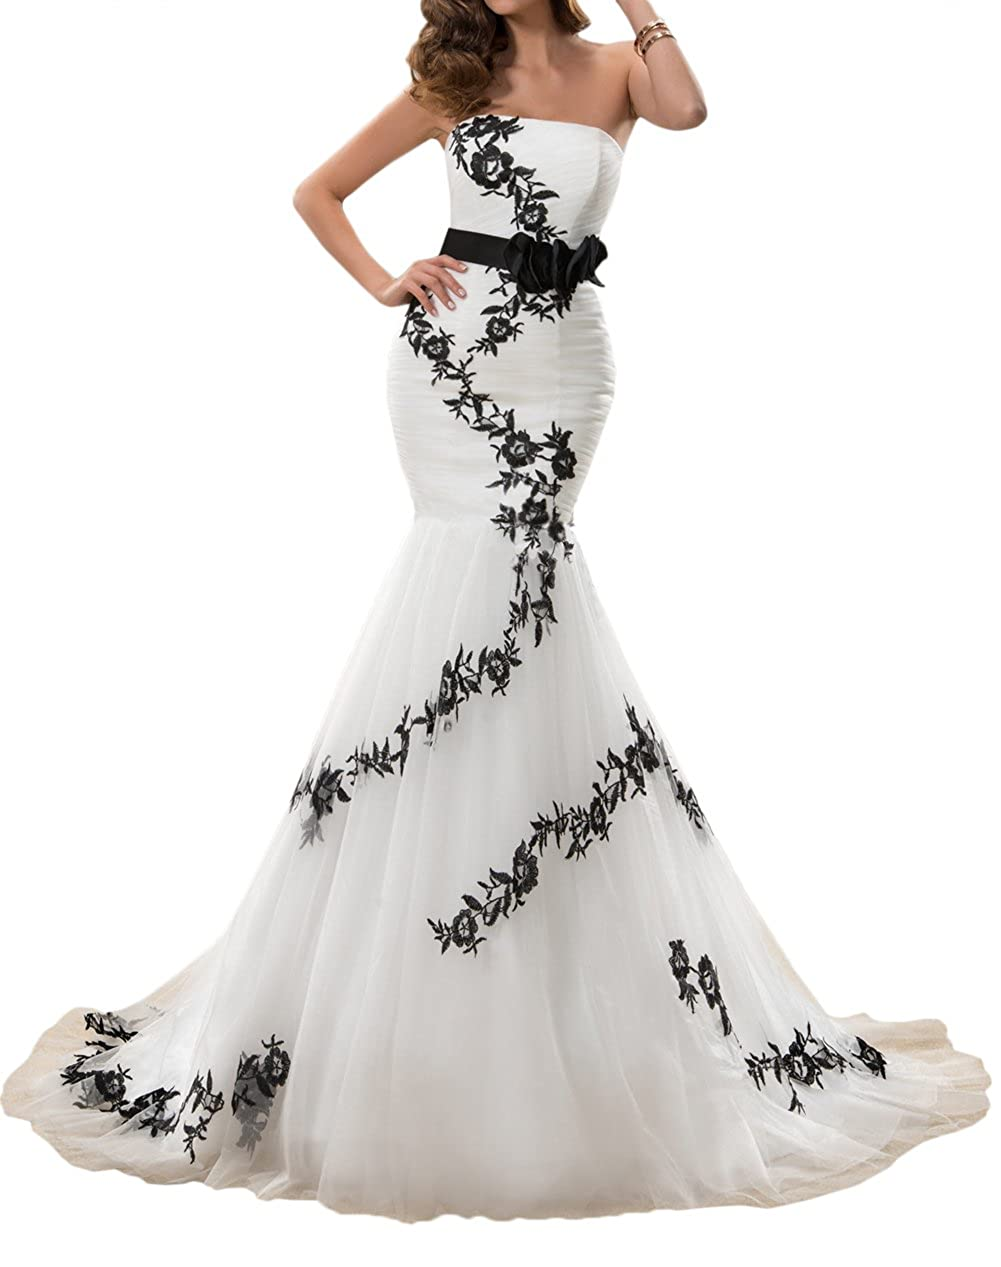 QY Bride Mermaid Wedding Dresses Long Bridal Reception Gowns Tulle